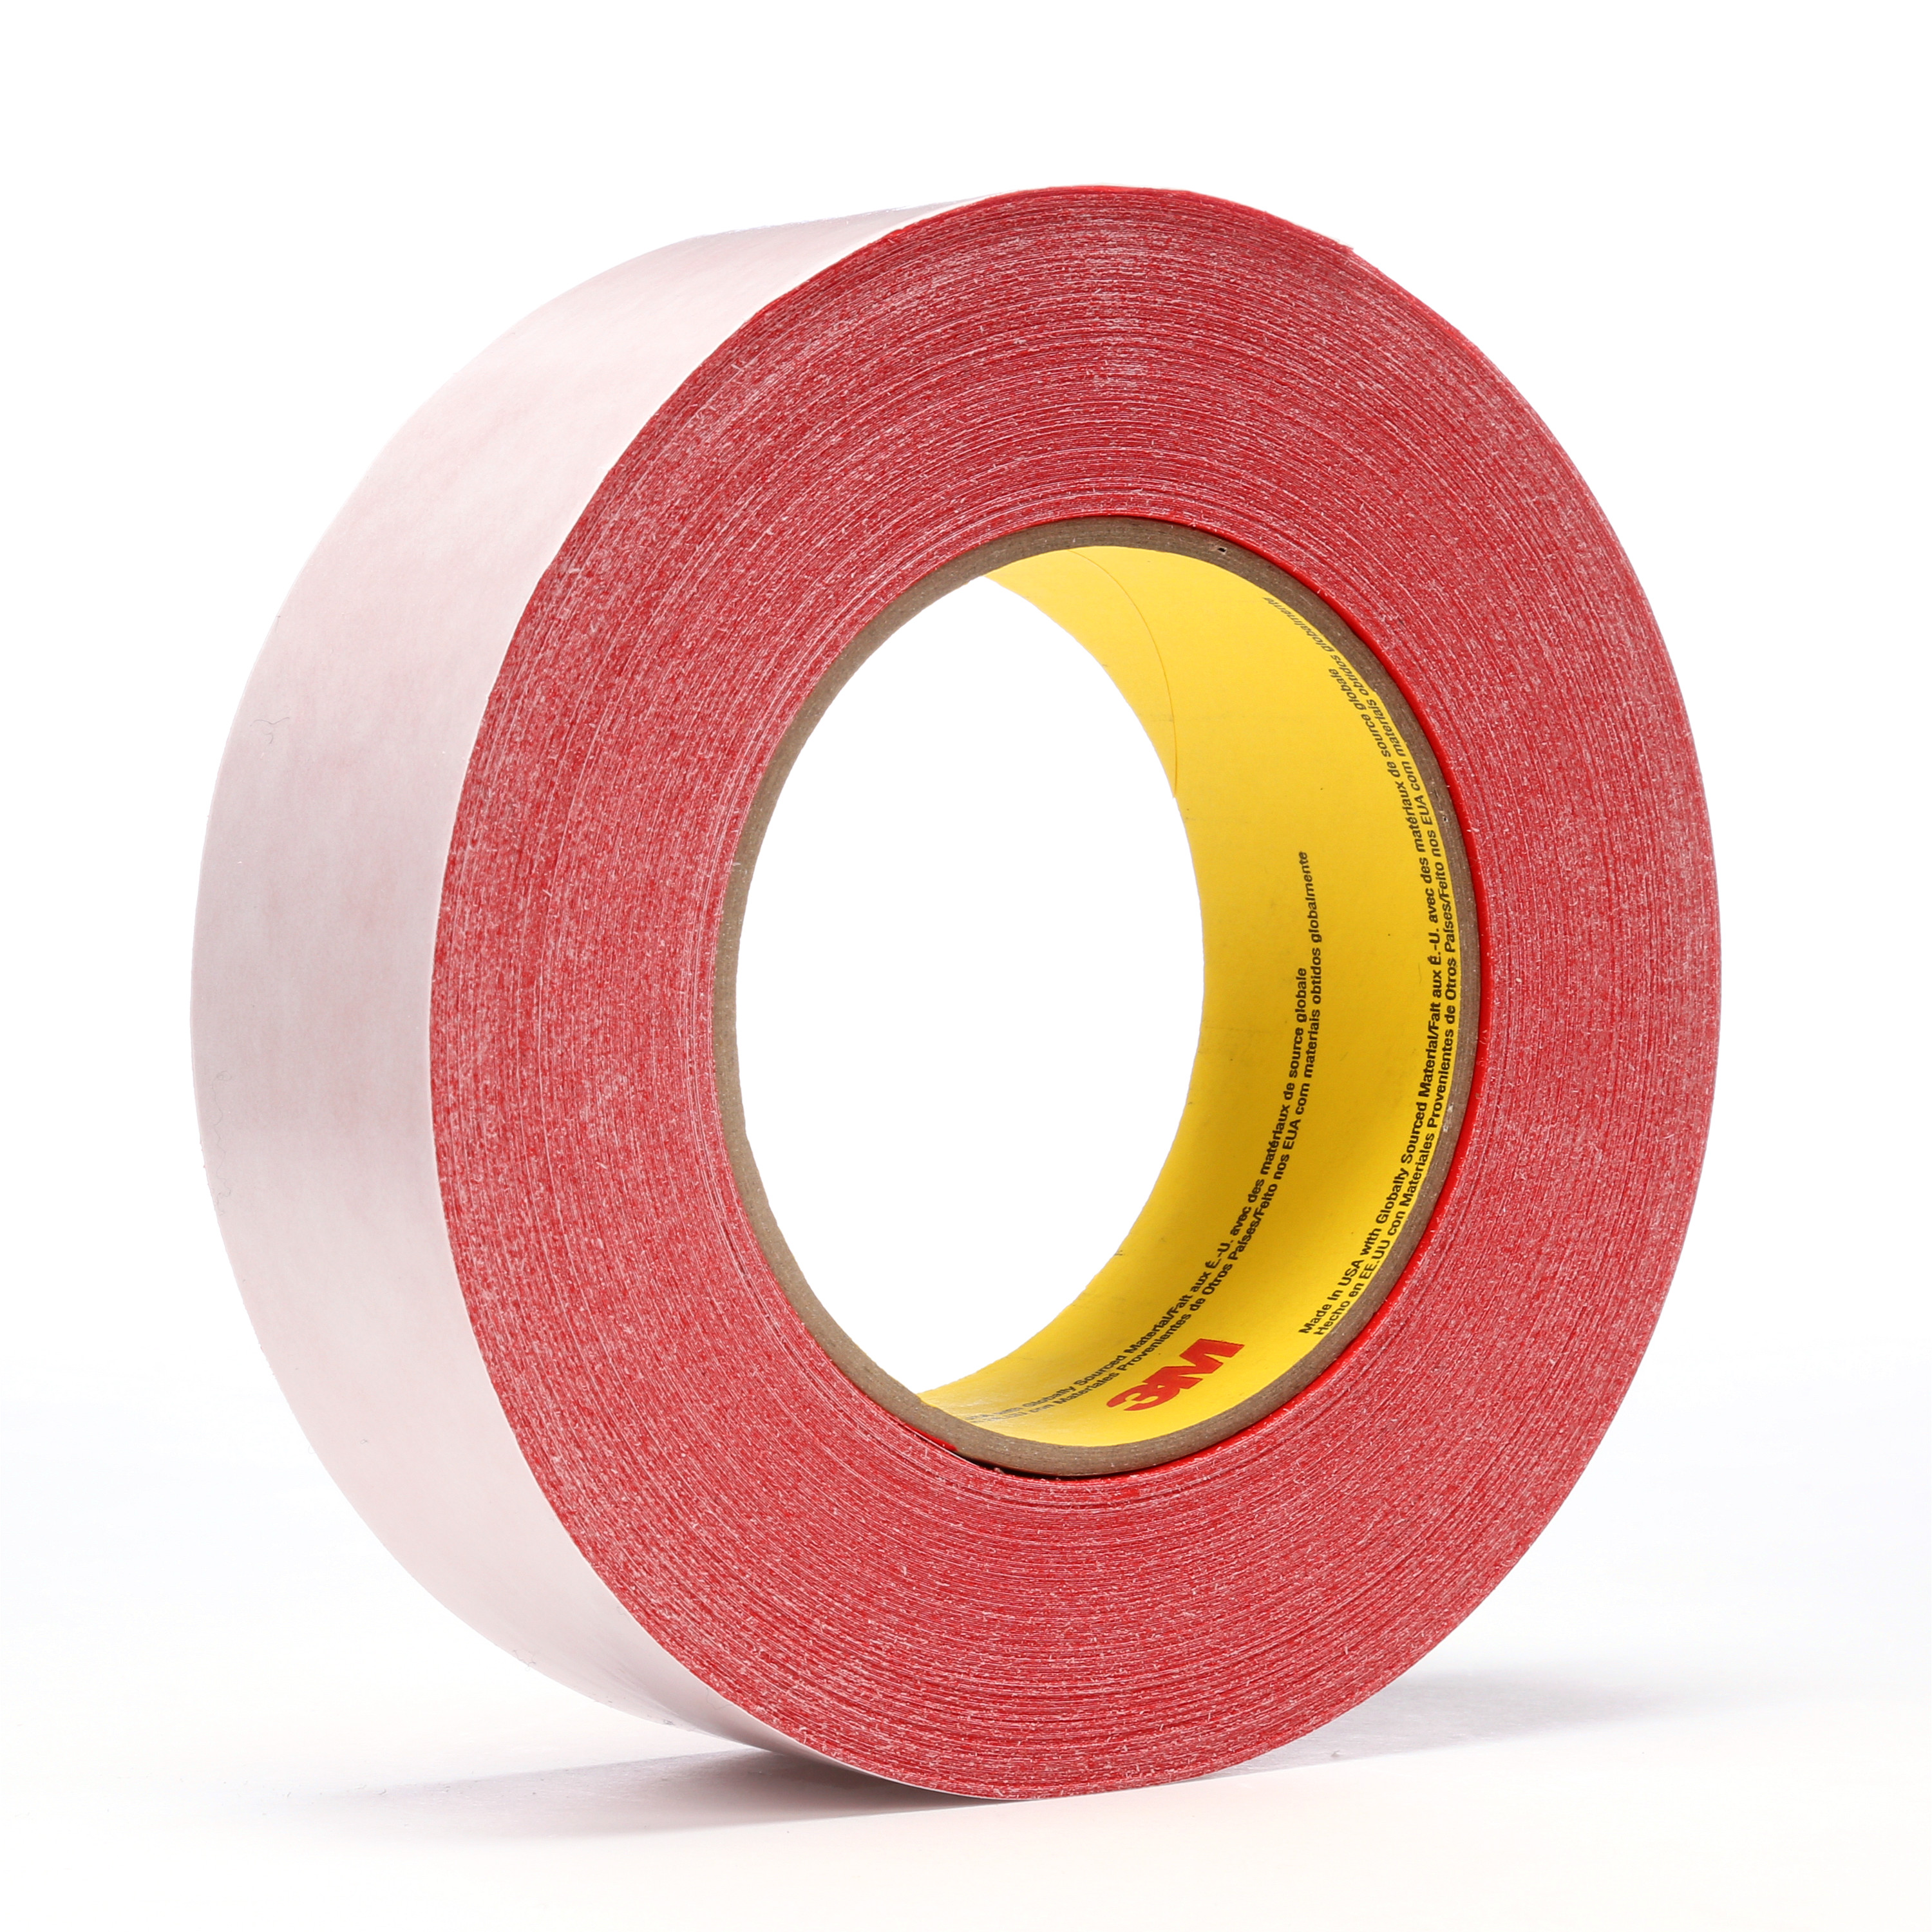 3M™ Double Coated Tape 9737R, Red, 36 mm x 55 m, 3.5 mil, 32 rolls per case